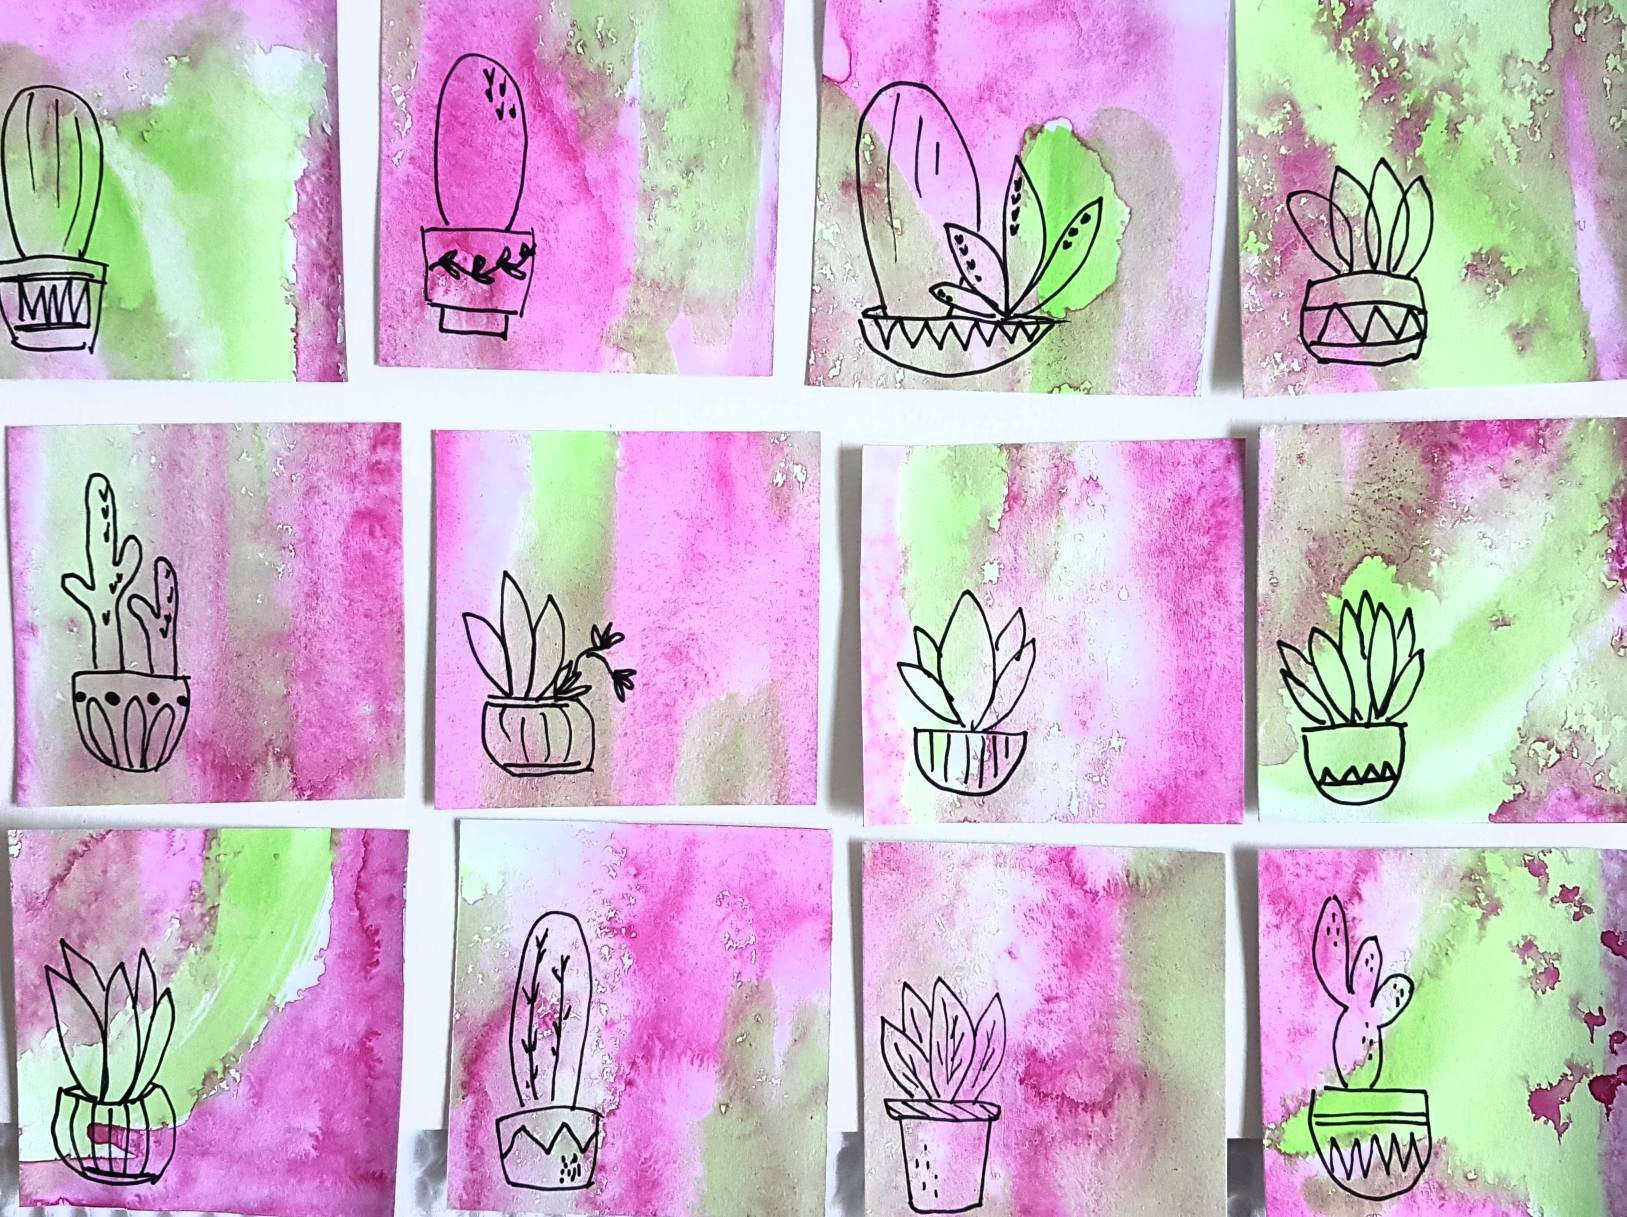 Hand crafted in Melbourne by Jacinta Payne, cute cactus illustration gift tags with watercolour background